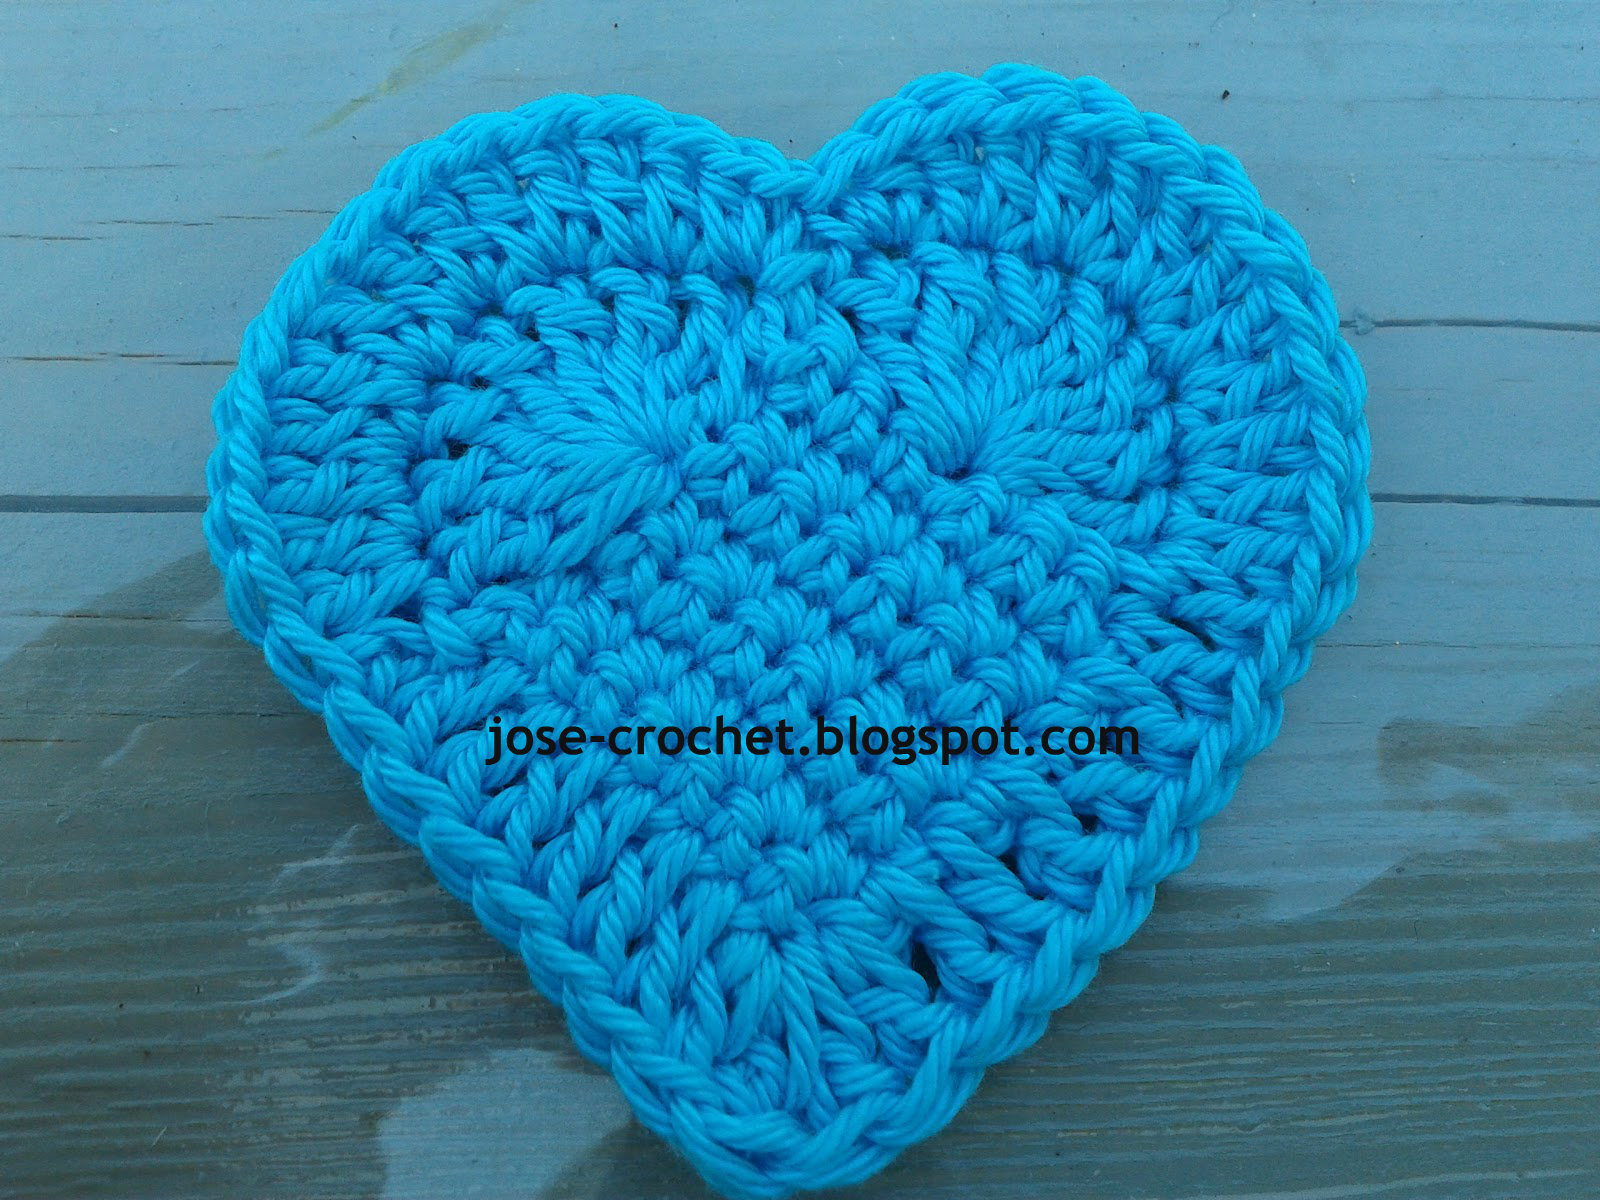 Crochet Patterns Hearts : JosE Crochet: Free crochet pattern heart ?